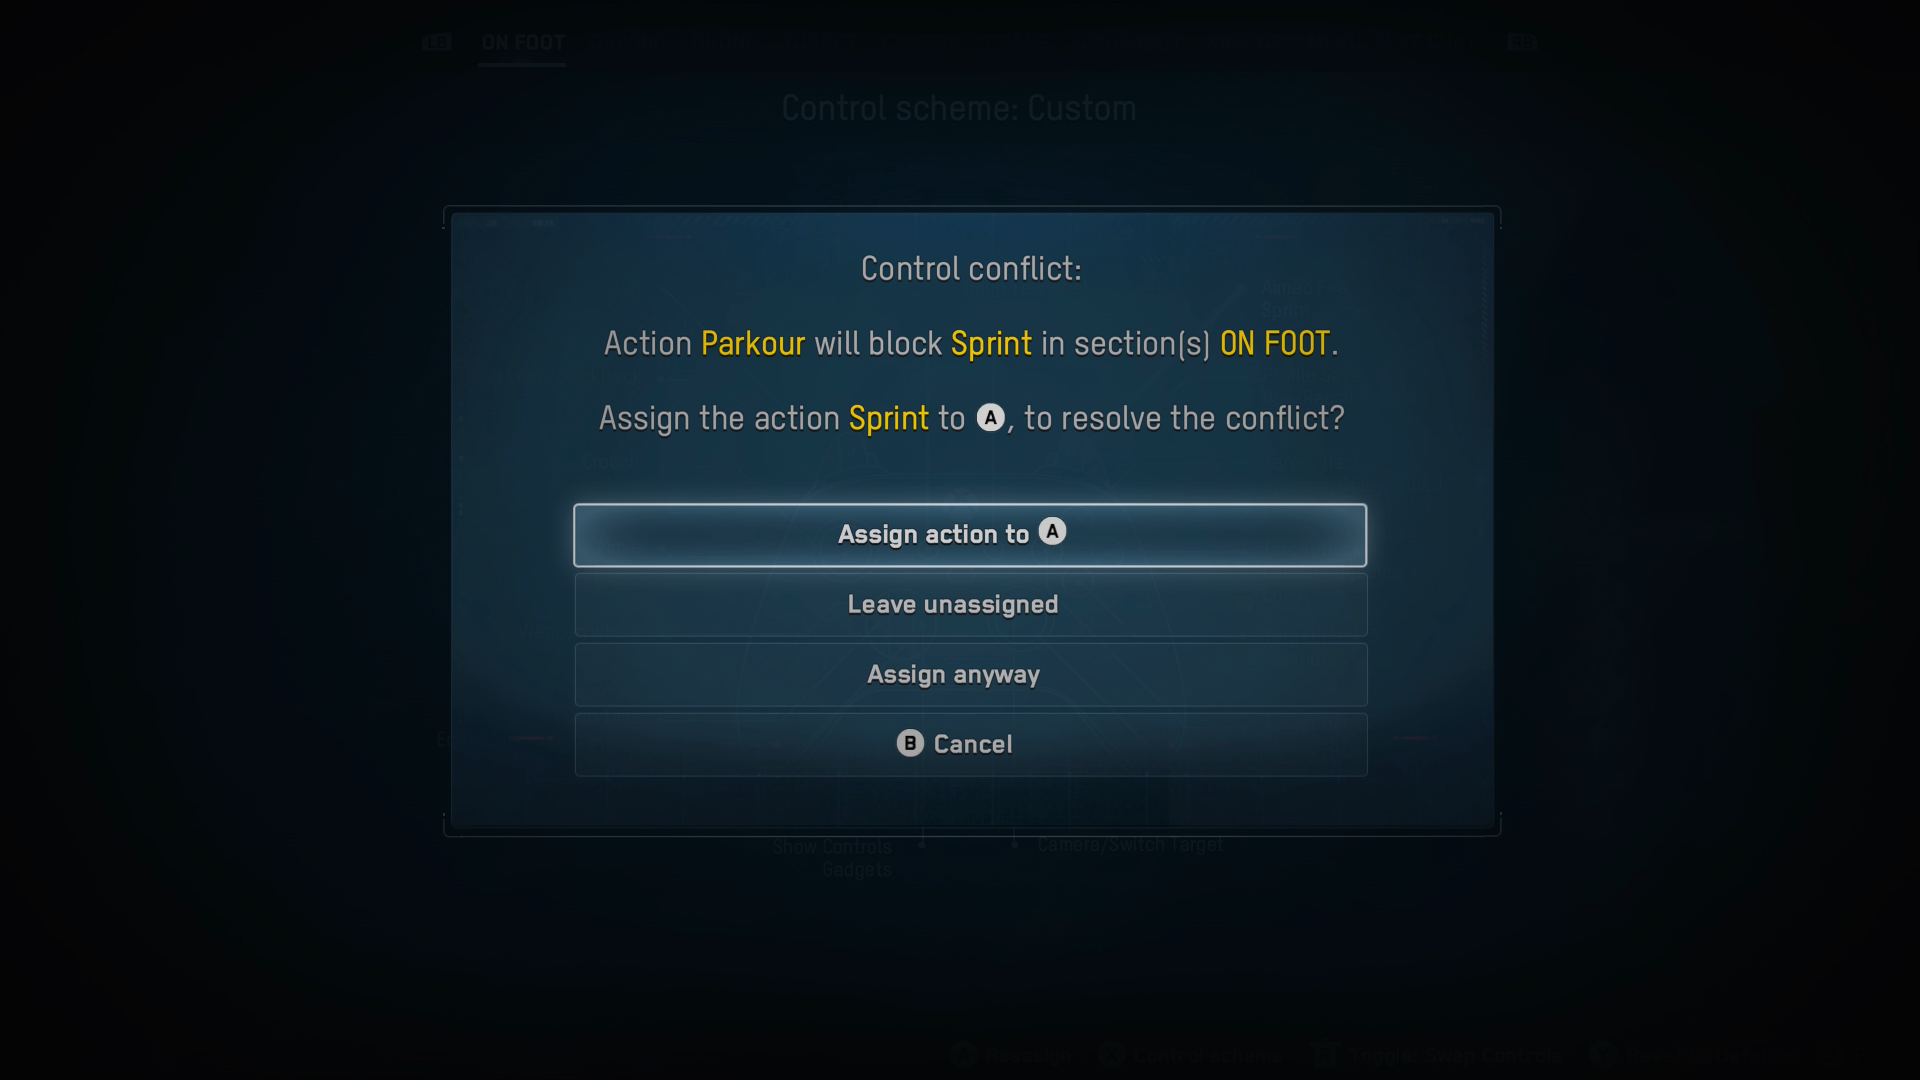 A screenshot of the Watch Dogs: Legion Control conflict screen.